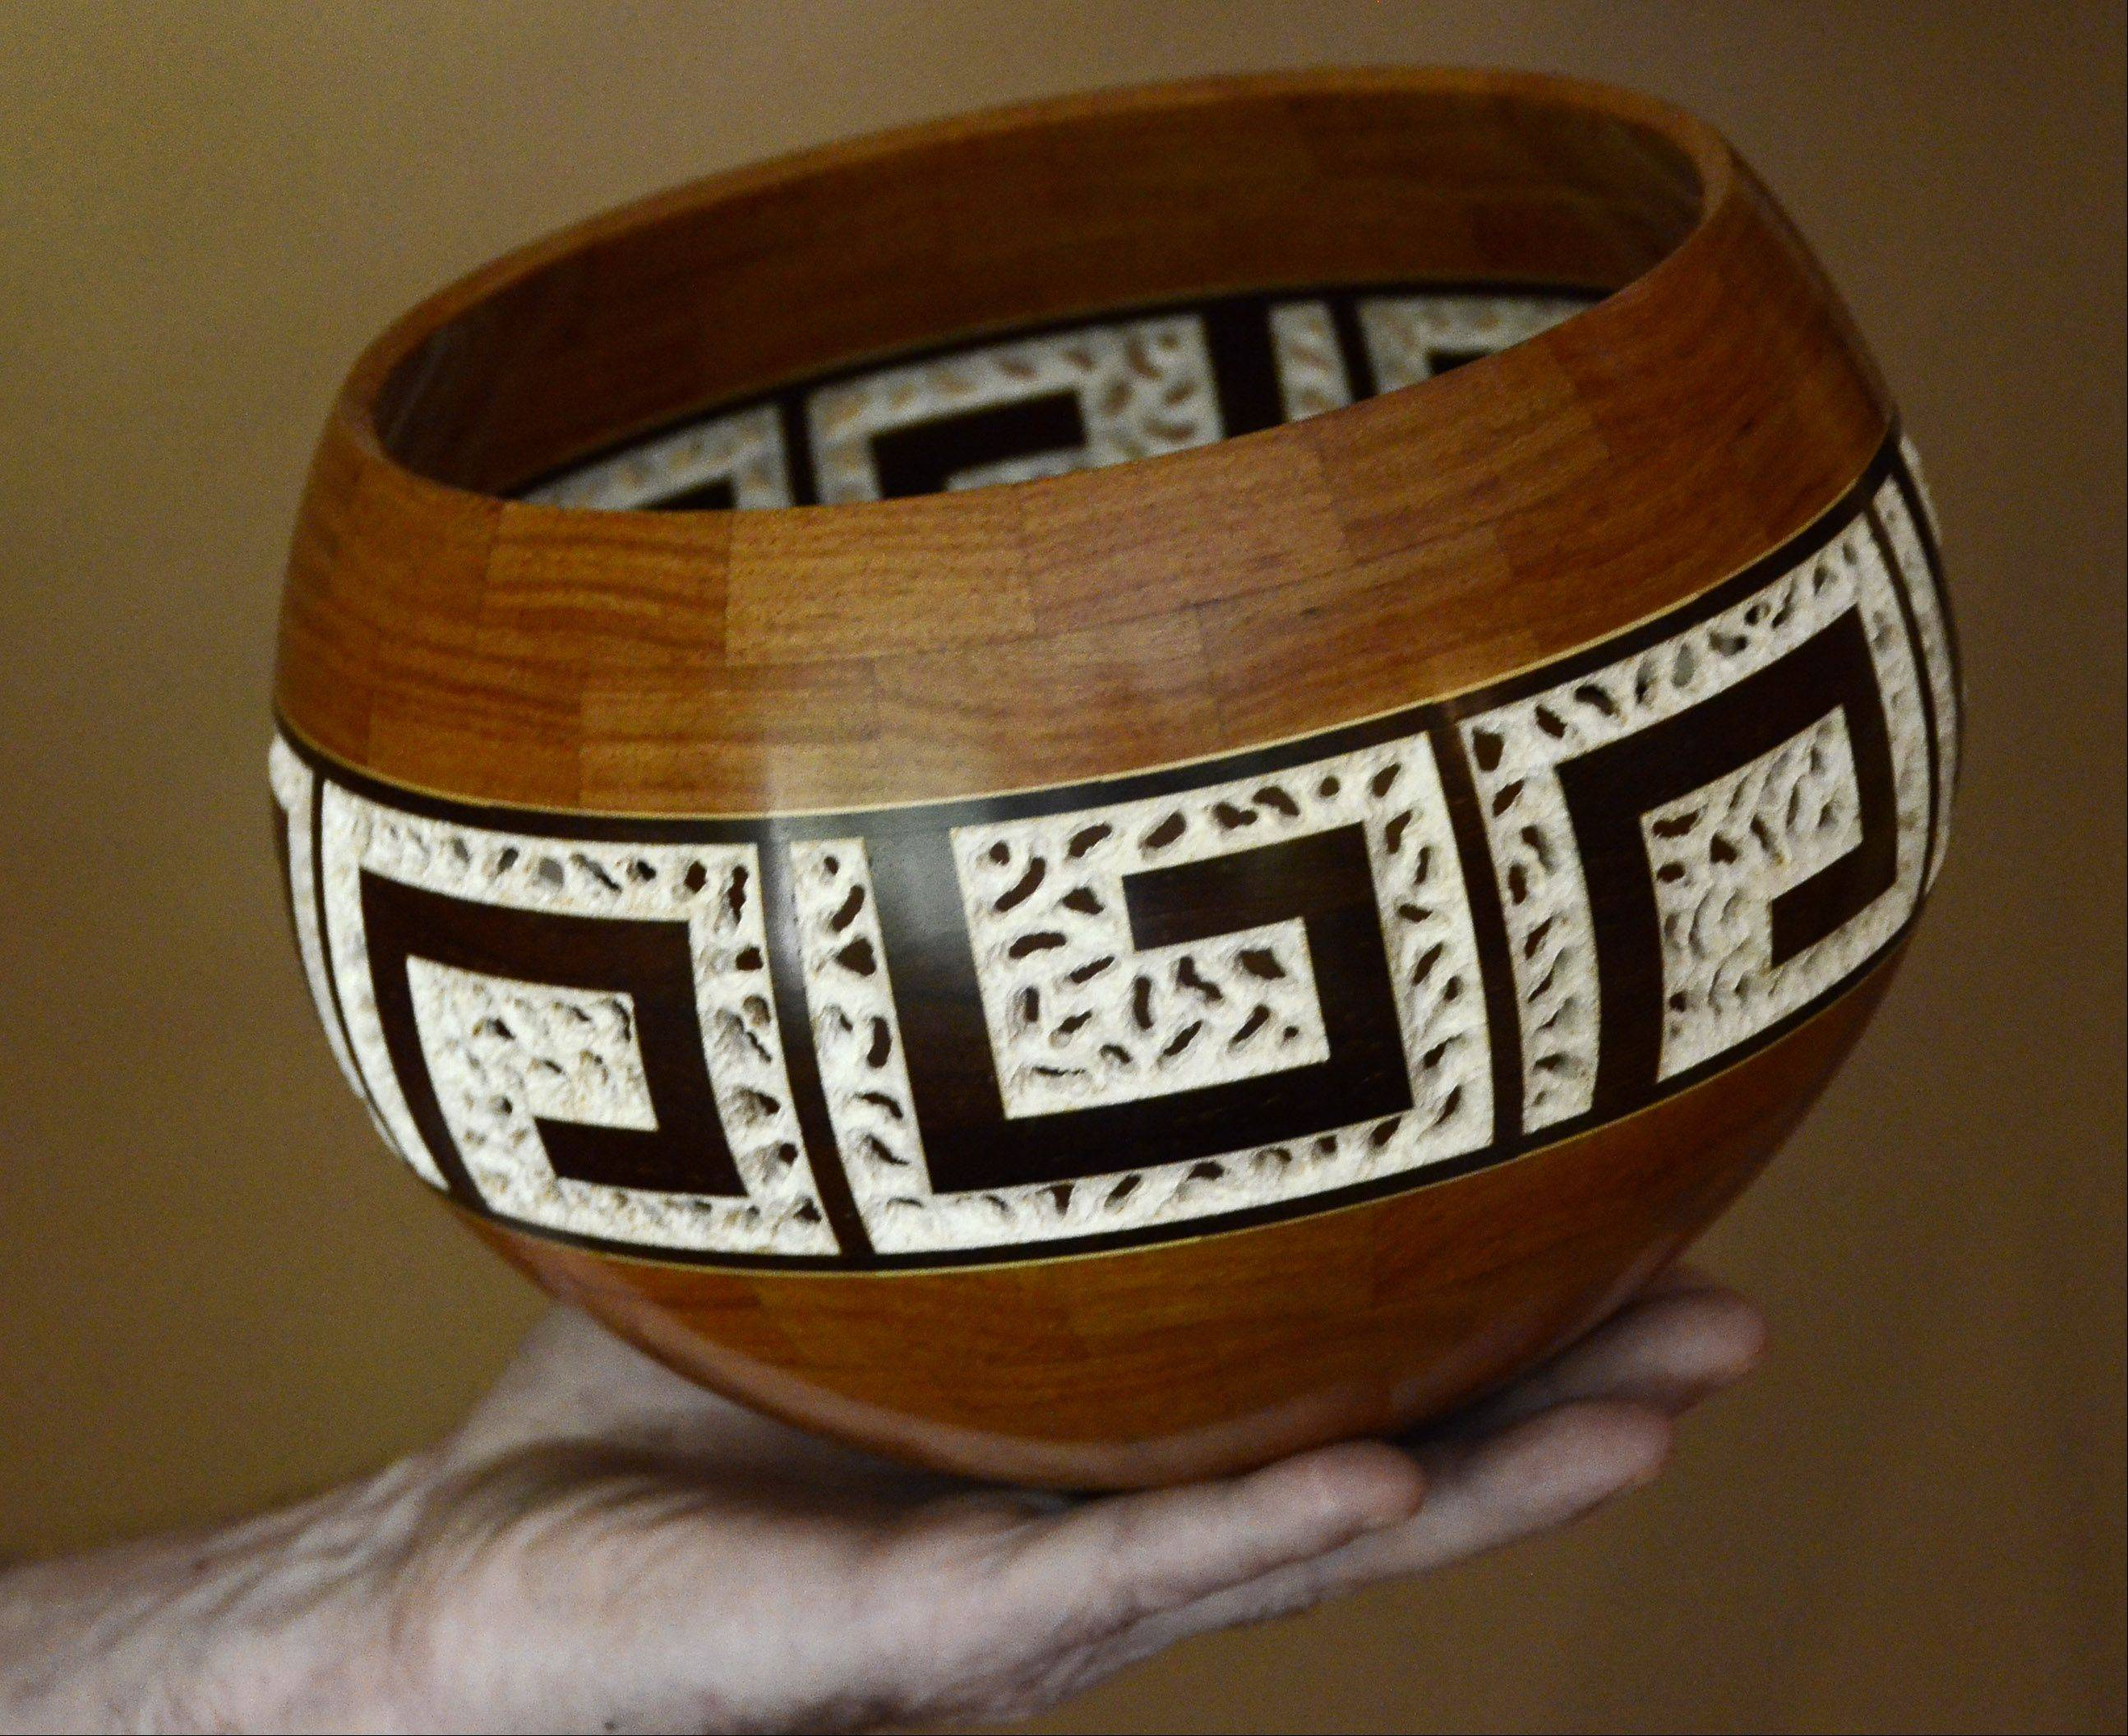 Despite his meticulous skill using a dental drill to carve the bleached maple in this segmented bowl made with three varieties of wood, Al Miotke of Mount Prospect says he considers himself more of a craftsman than an artist.